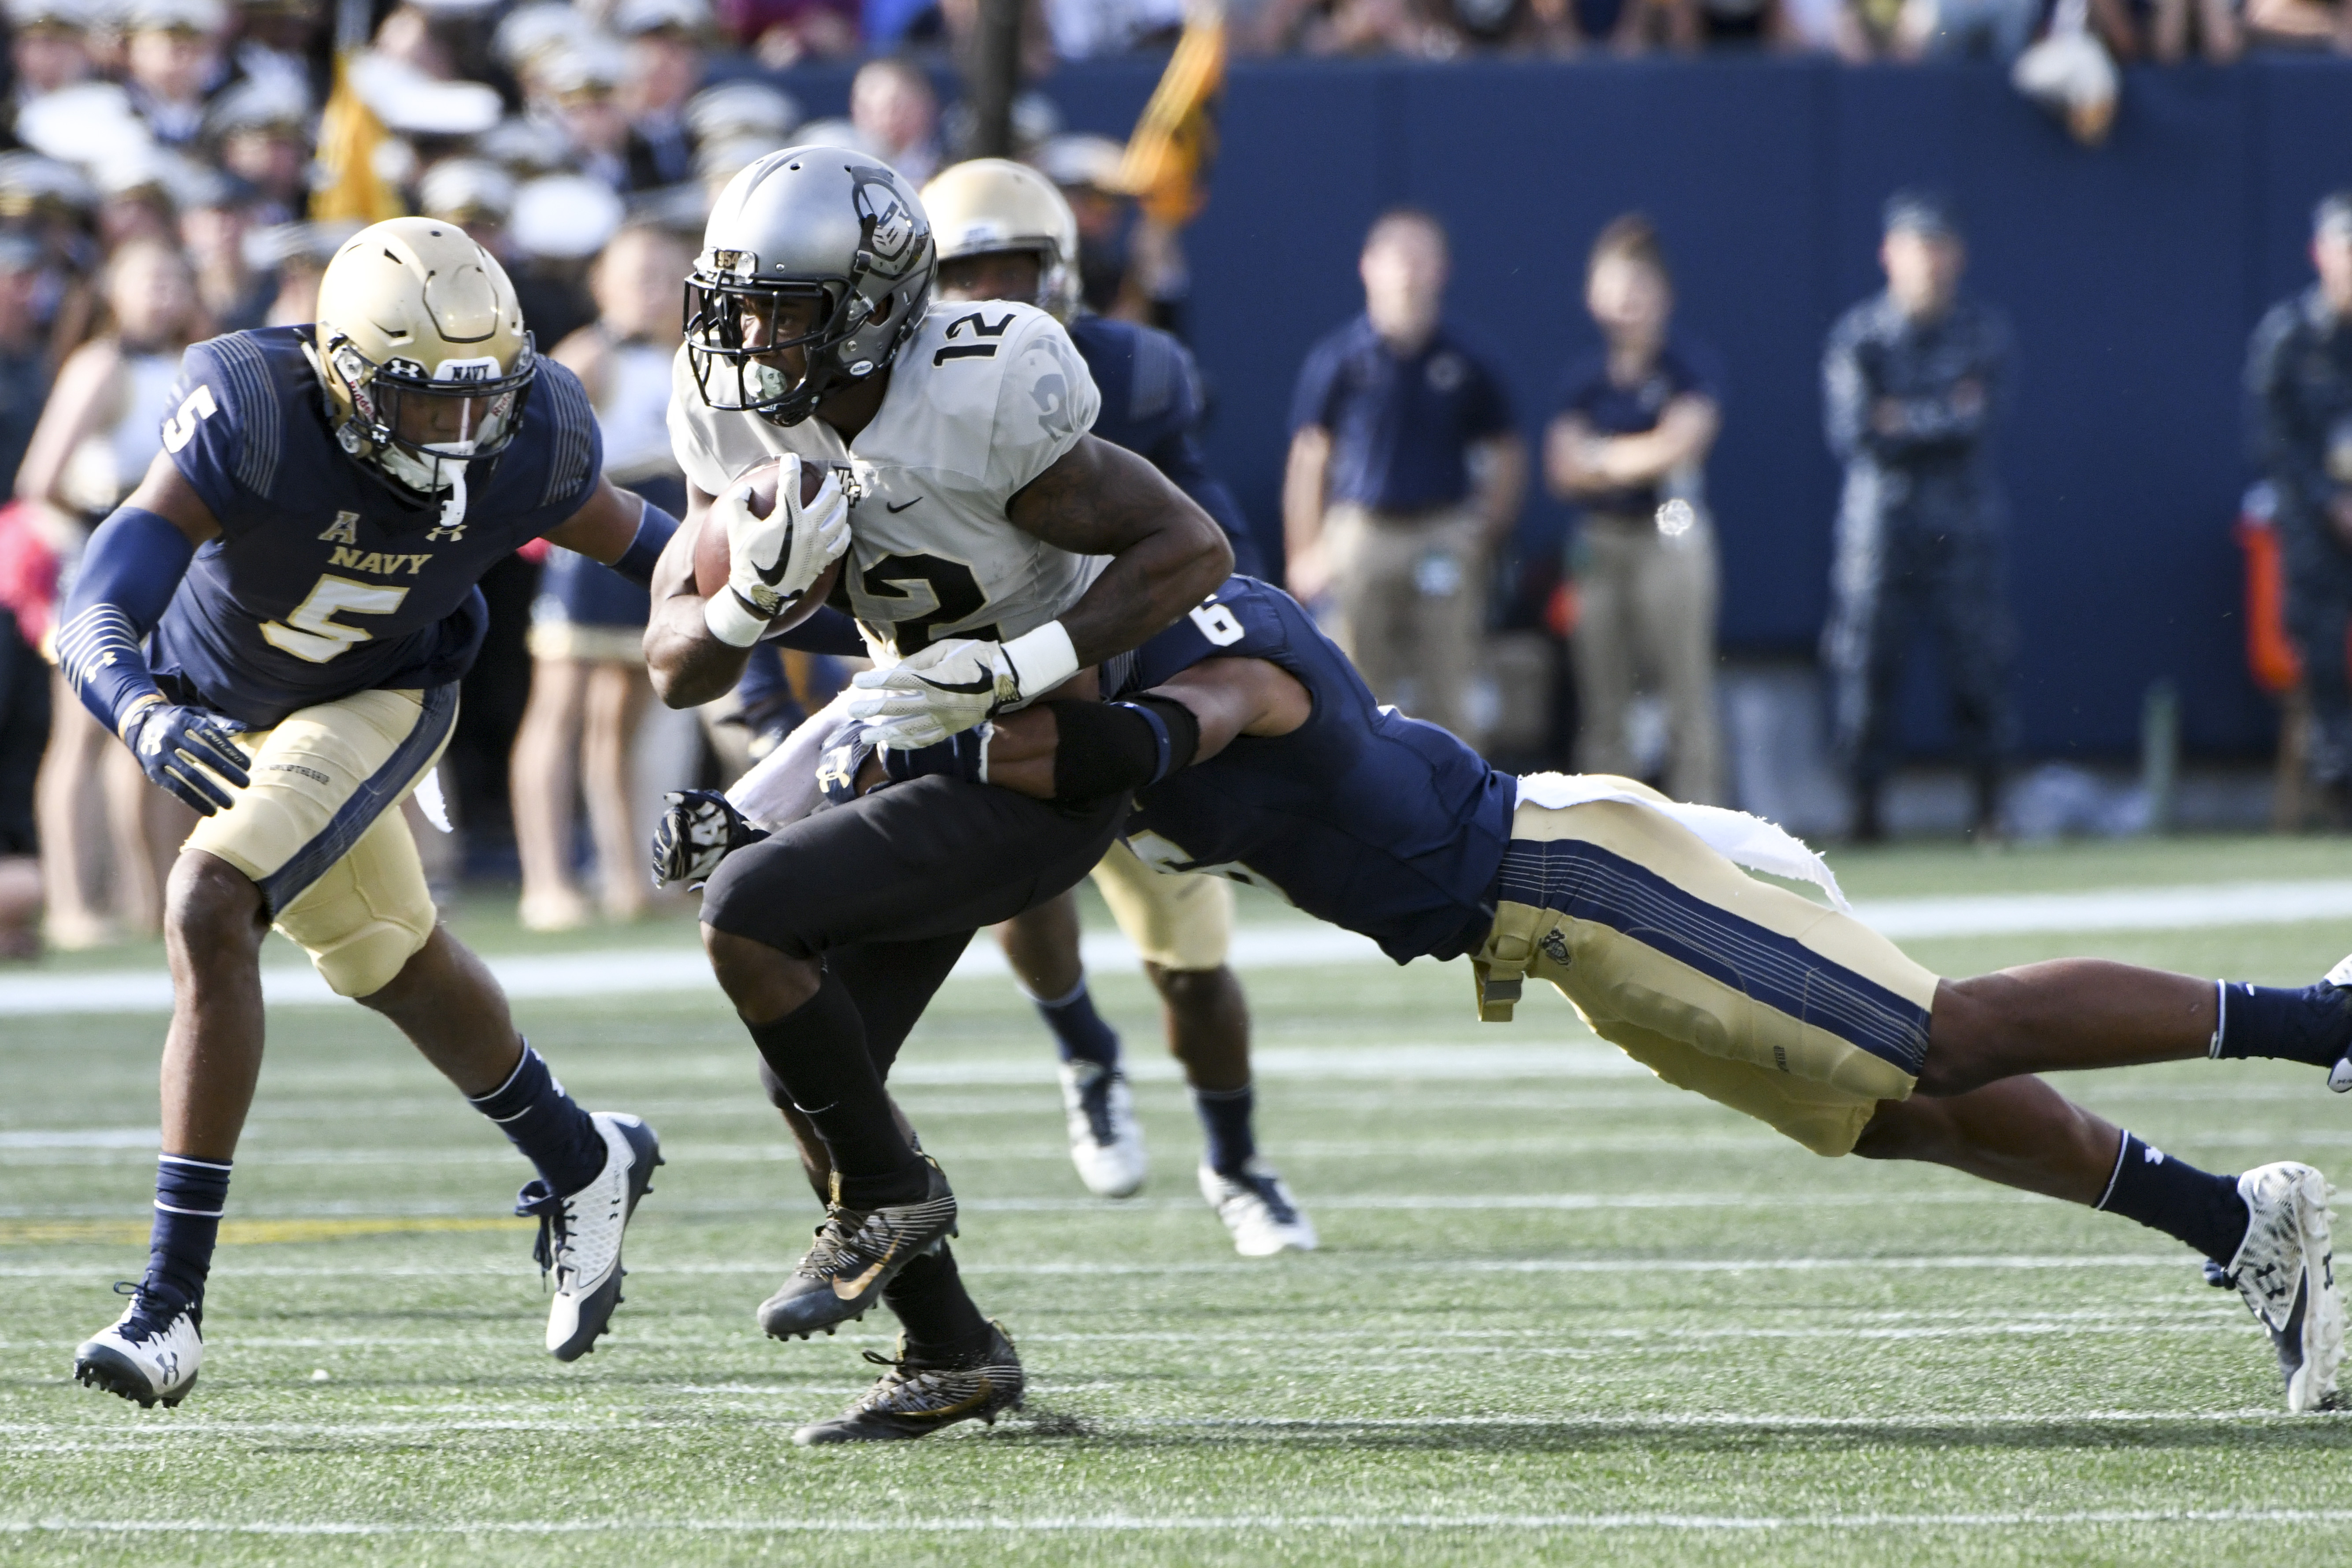 COLLEGE FOOTBALL: OCT 21 UCF at Navy